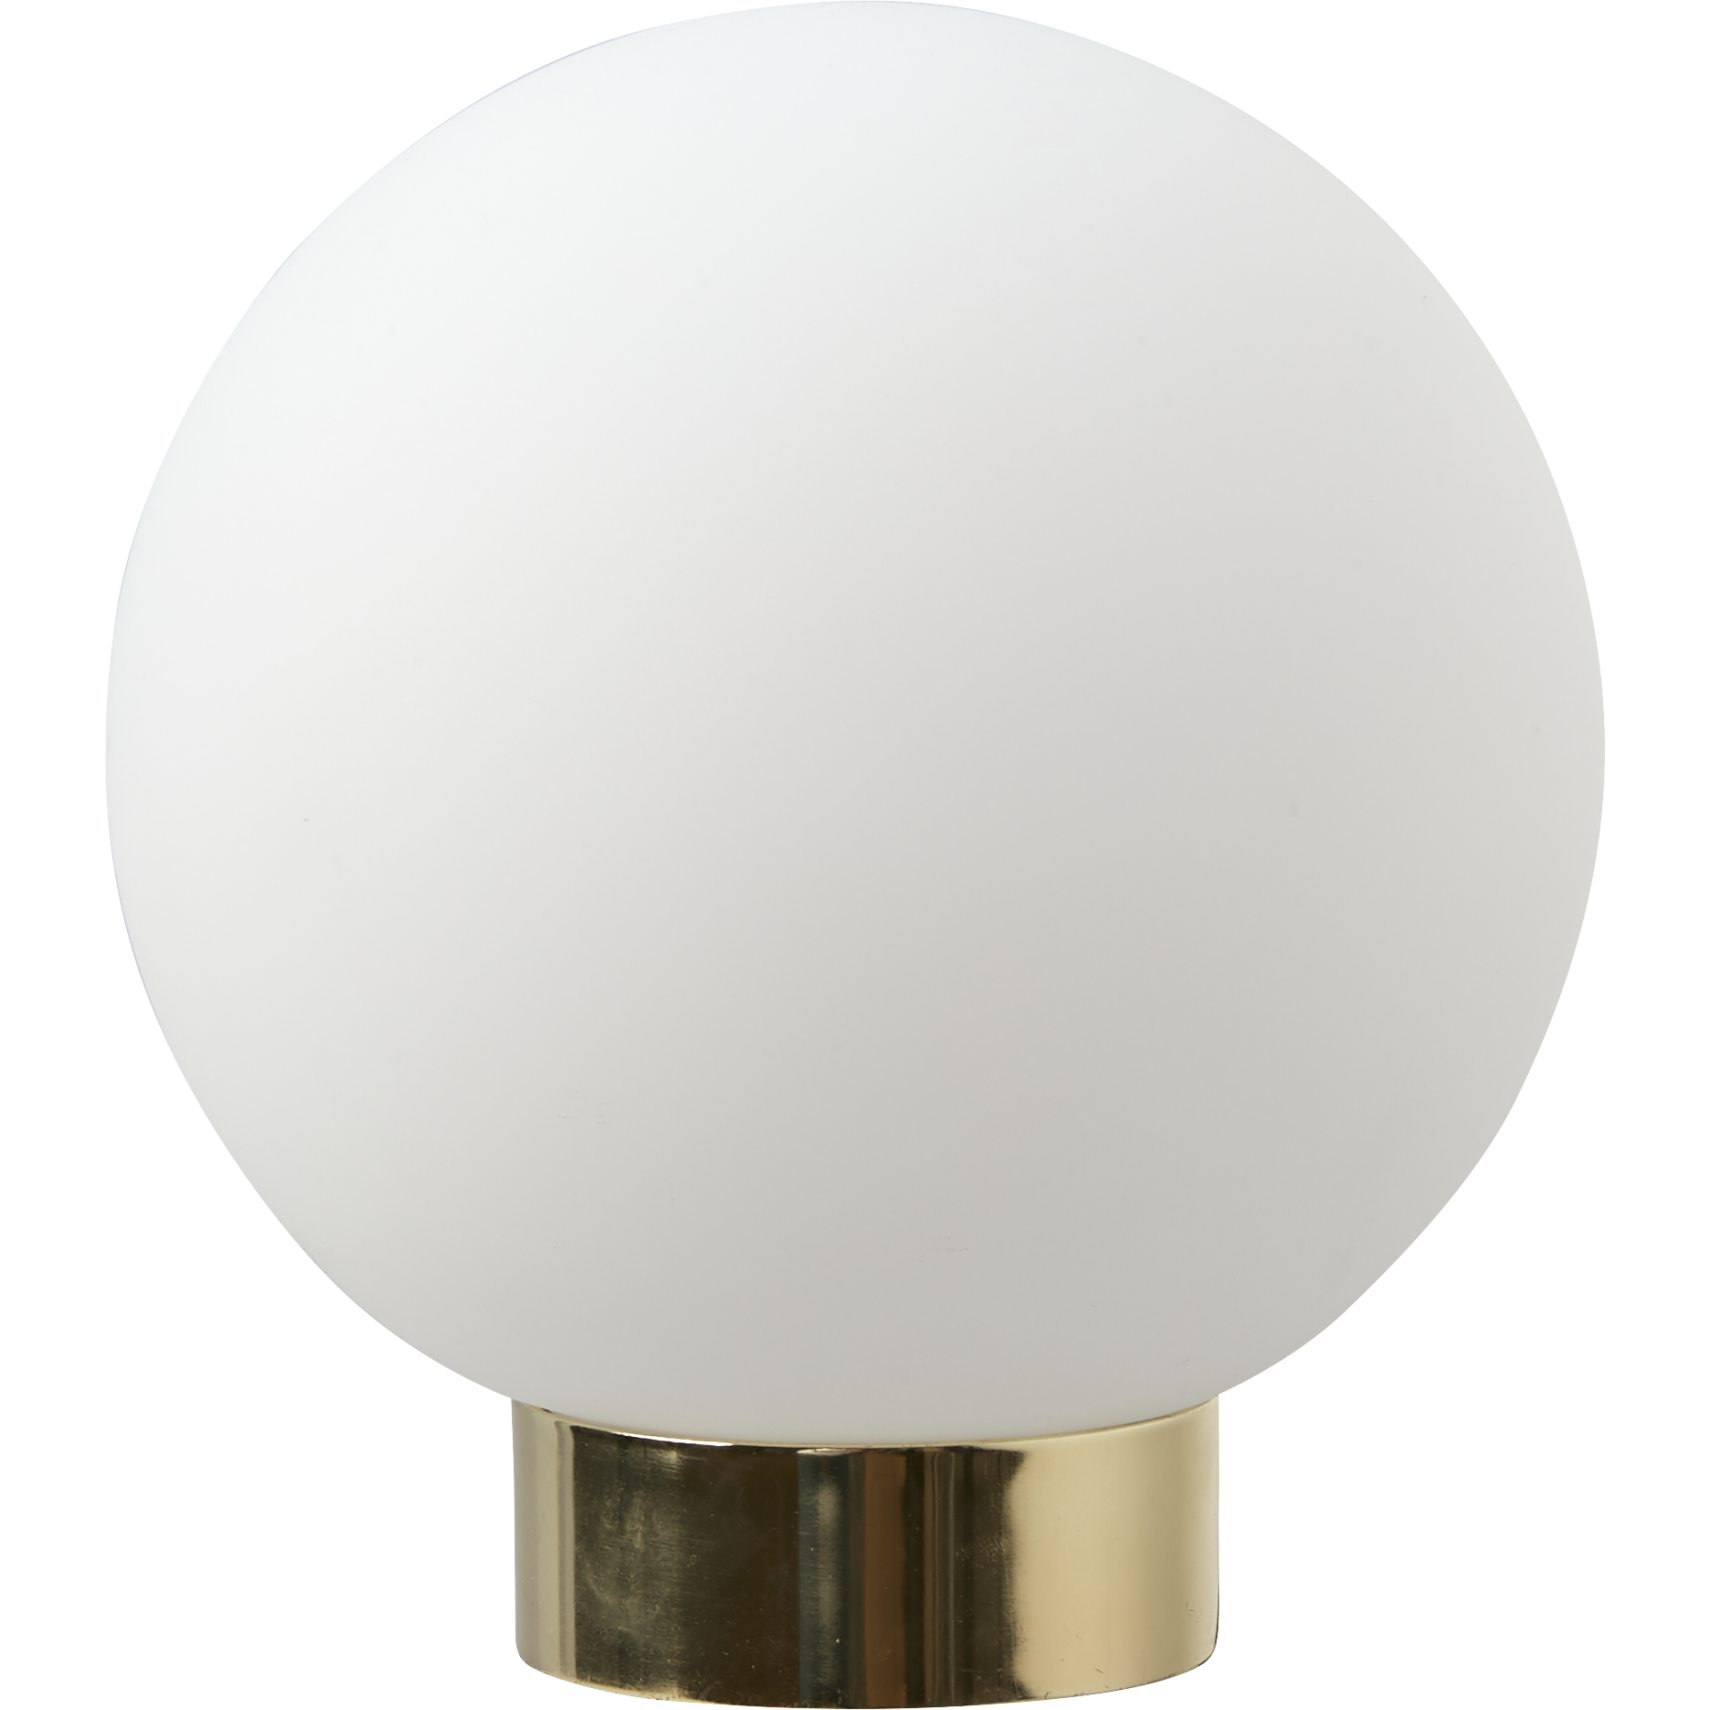 Aura Bordlampe - Messing base, opal glaskugle og sort ledning